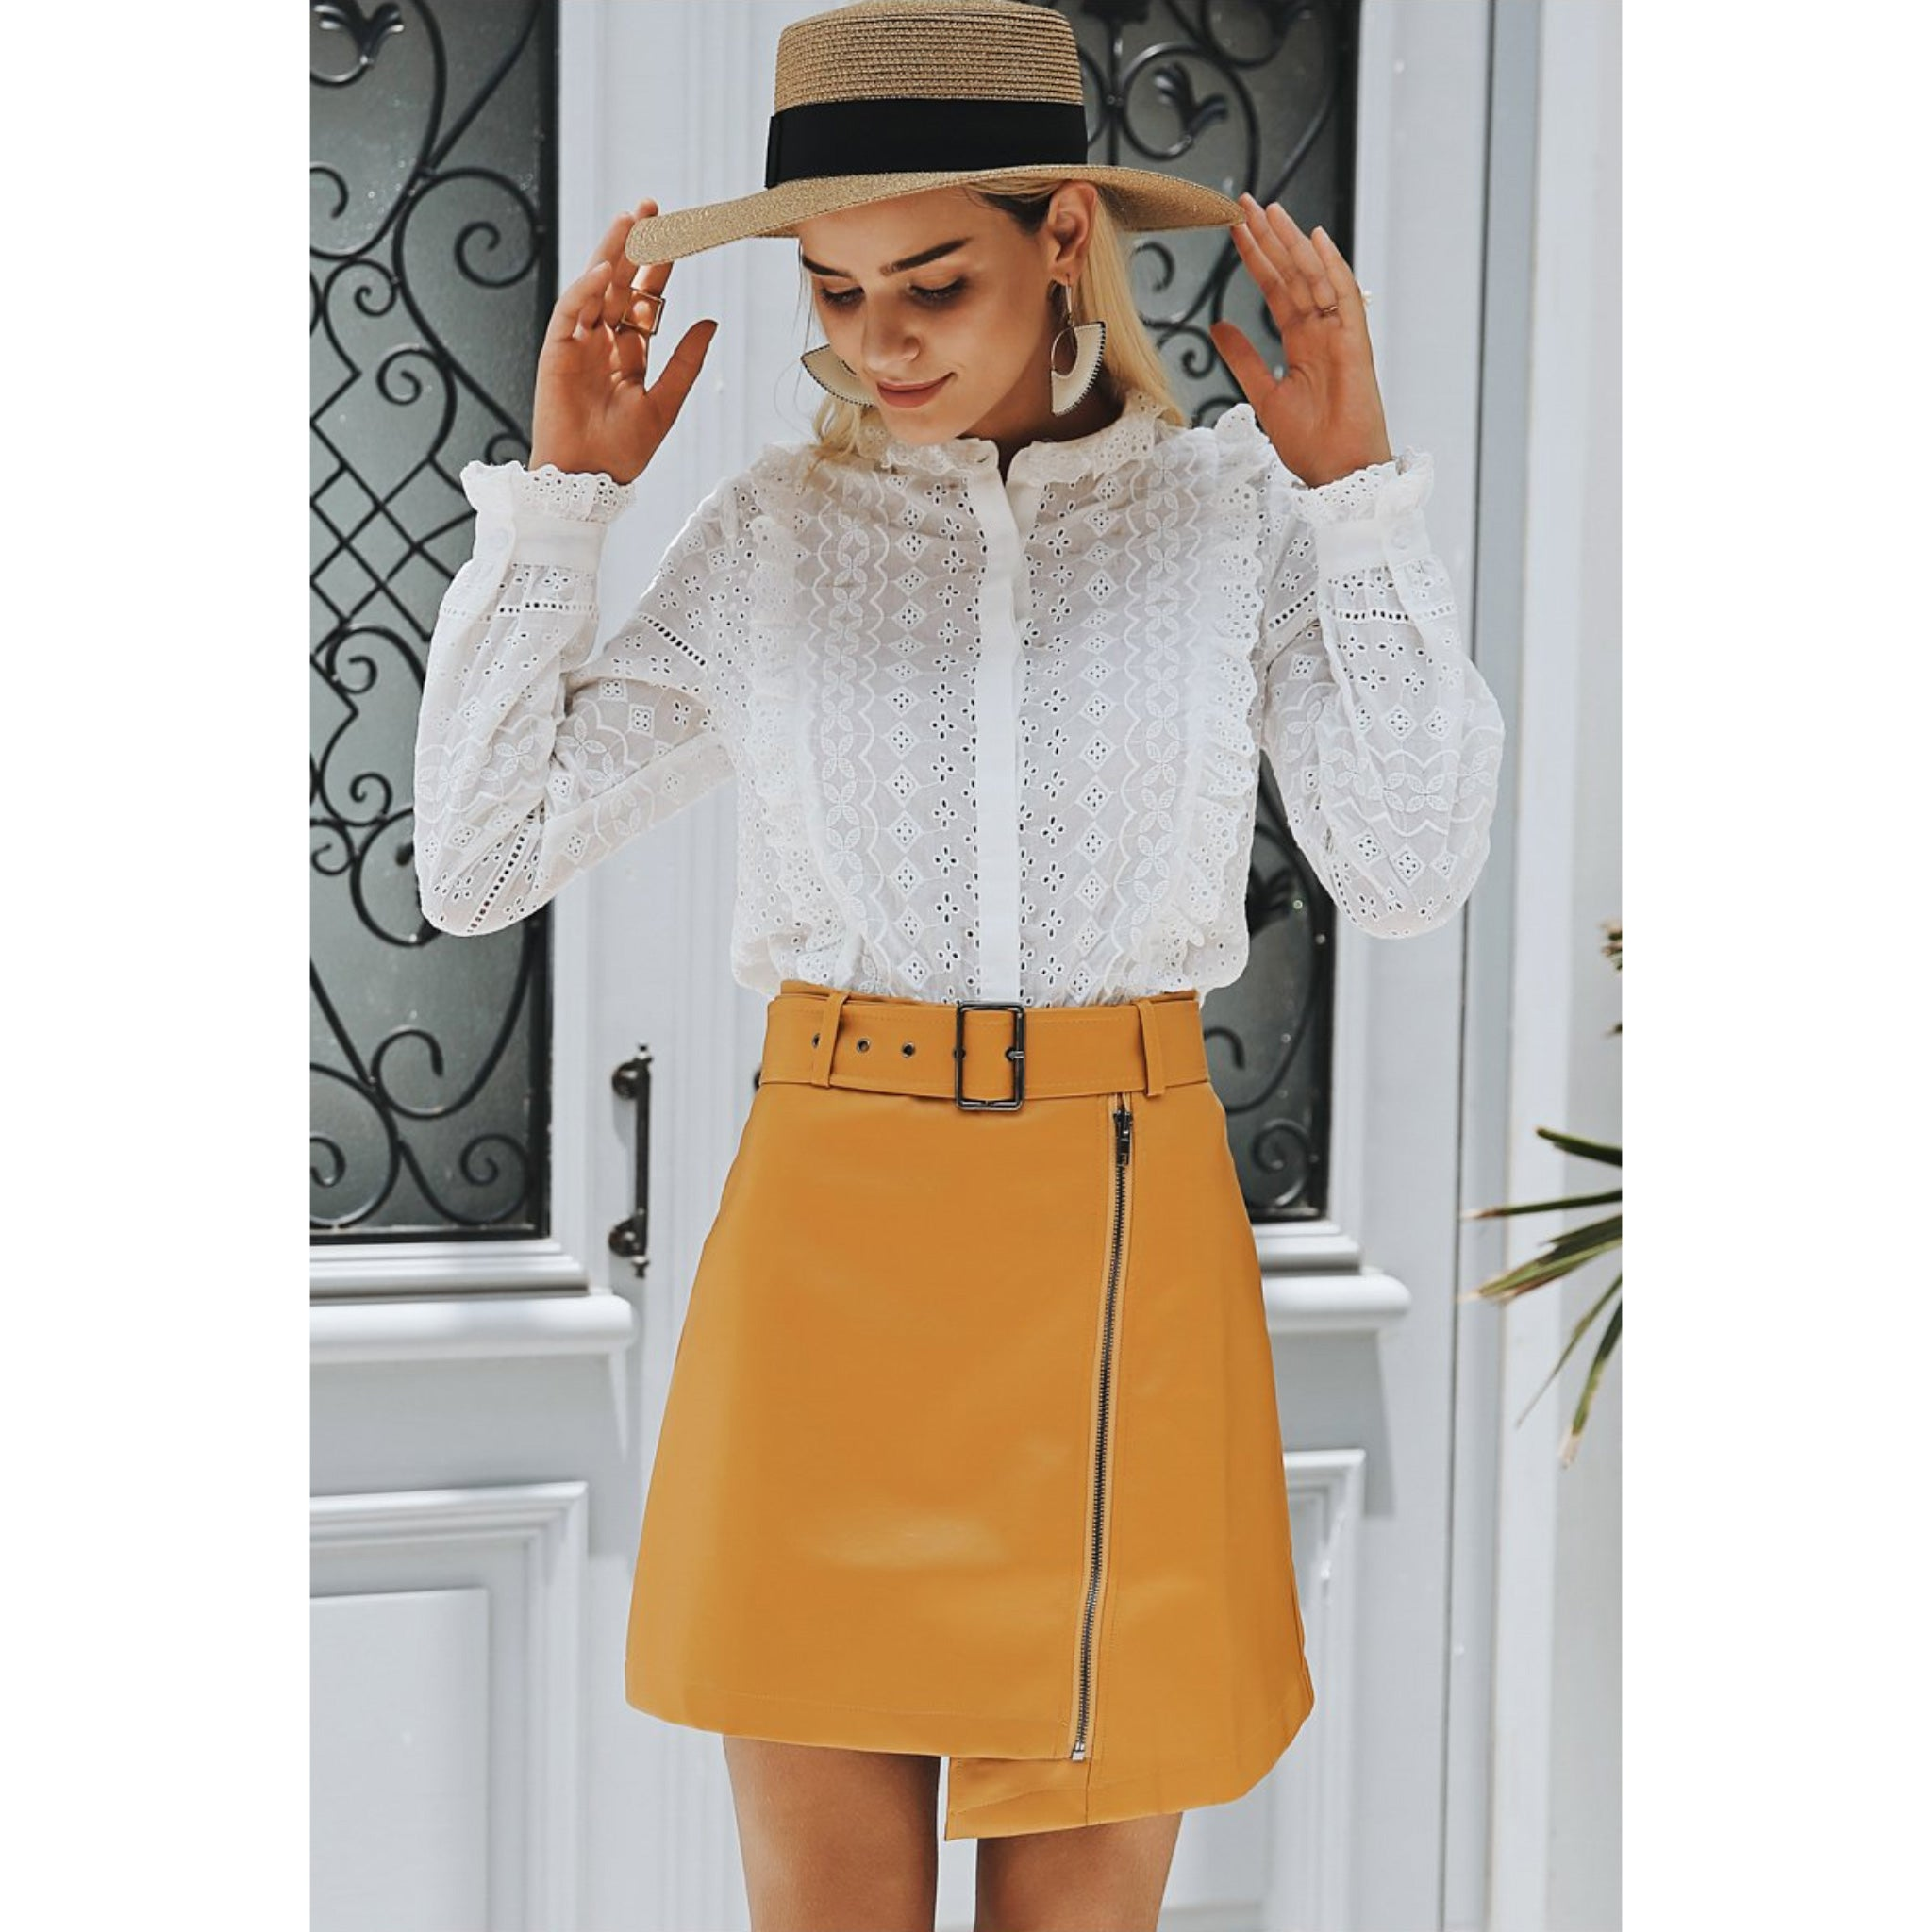 Yellow Mini Skirt Faux Leather with Belt High Waisted